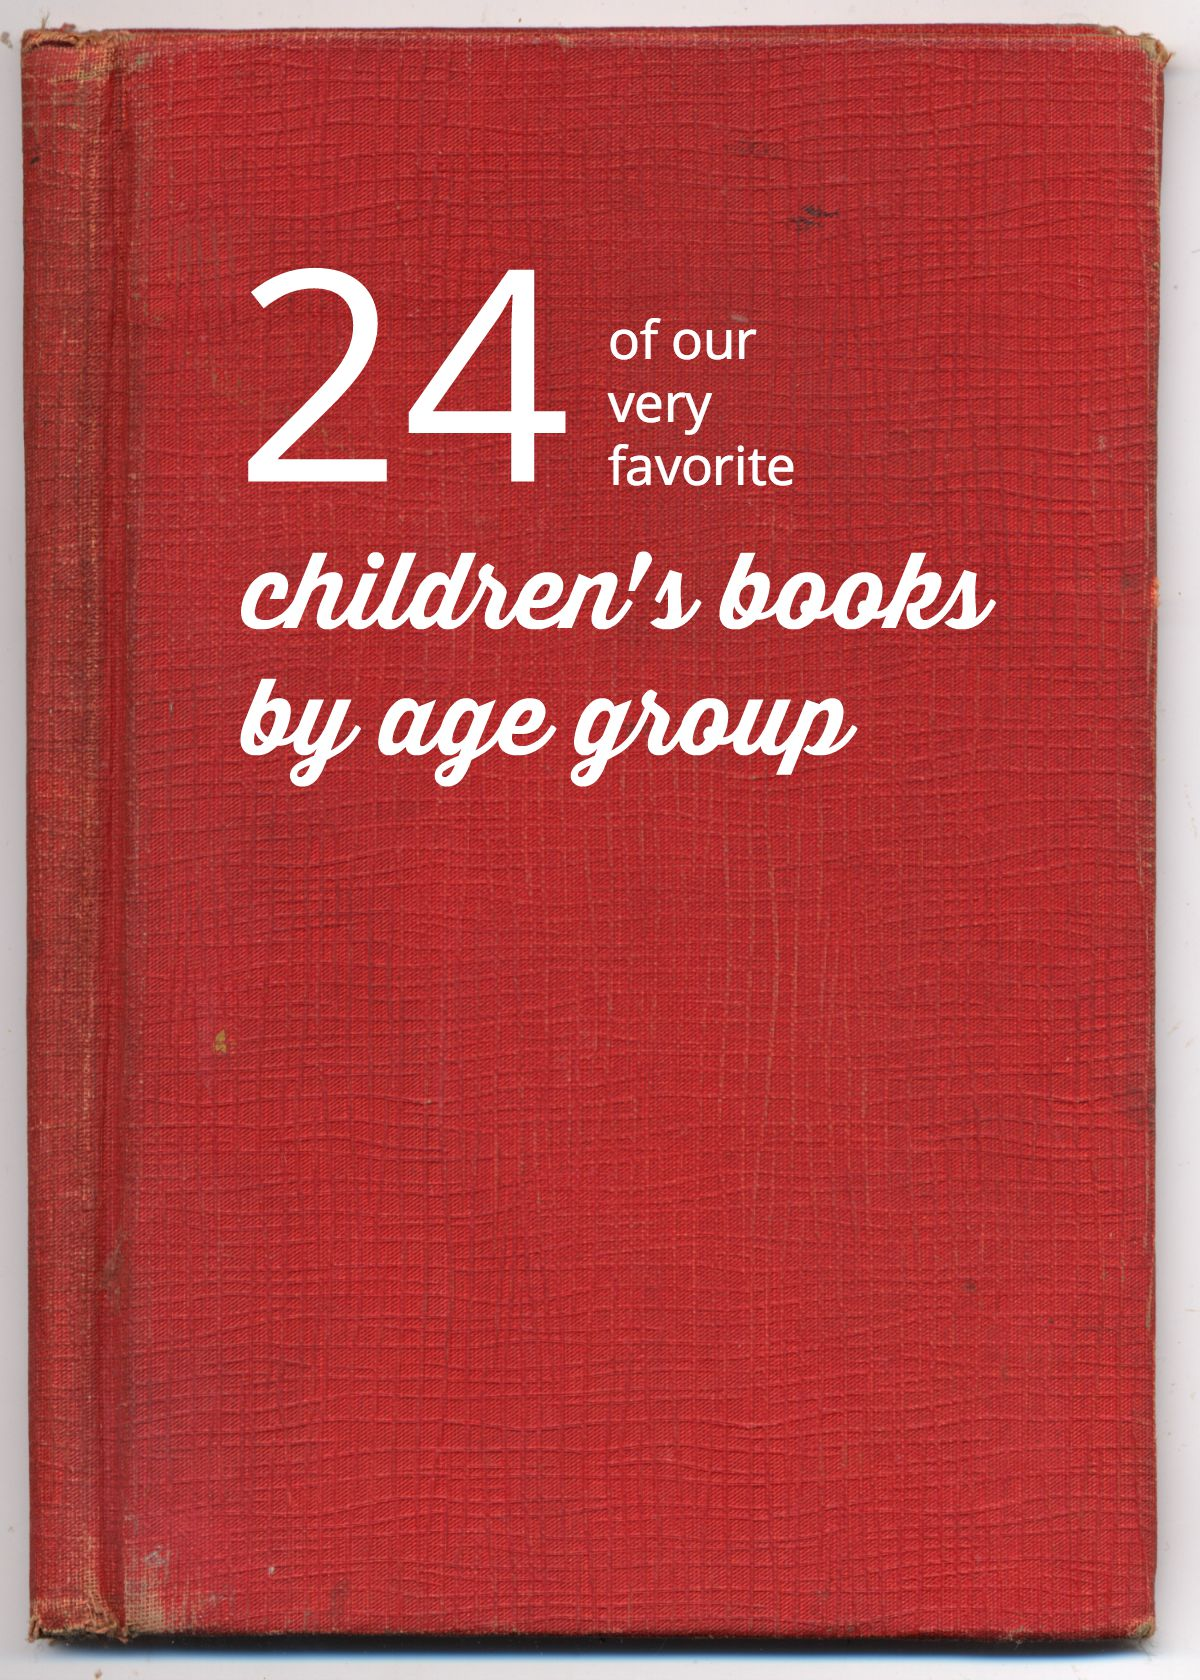 The moms of WMAG got together and listed the best books for children by age group. We love 'em, our kids love 'em, and we hope you and yours will, too.